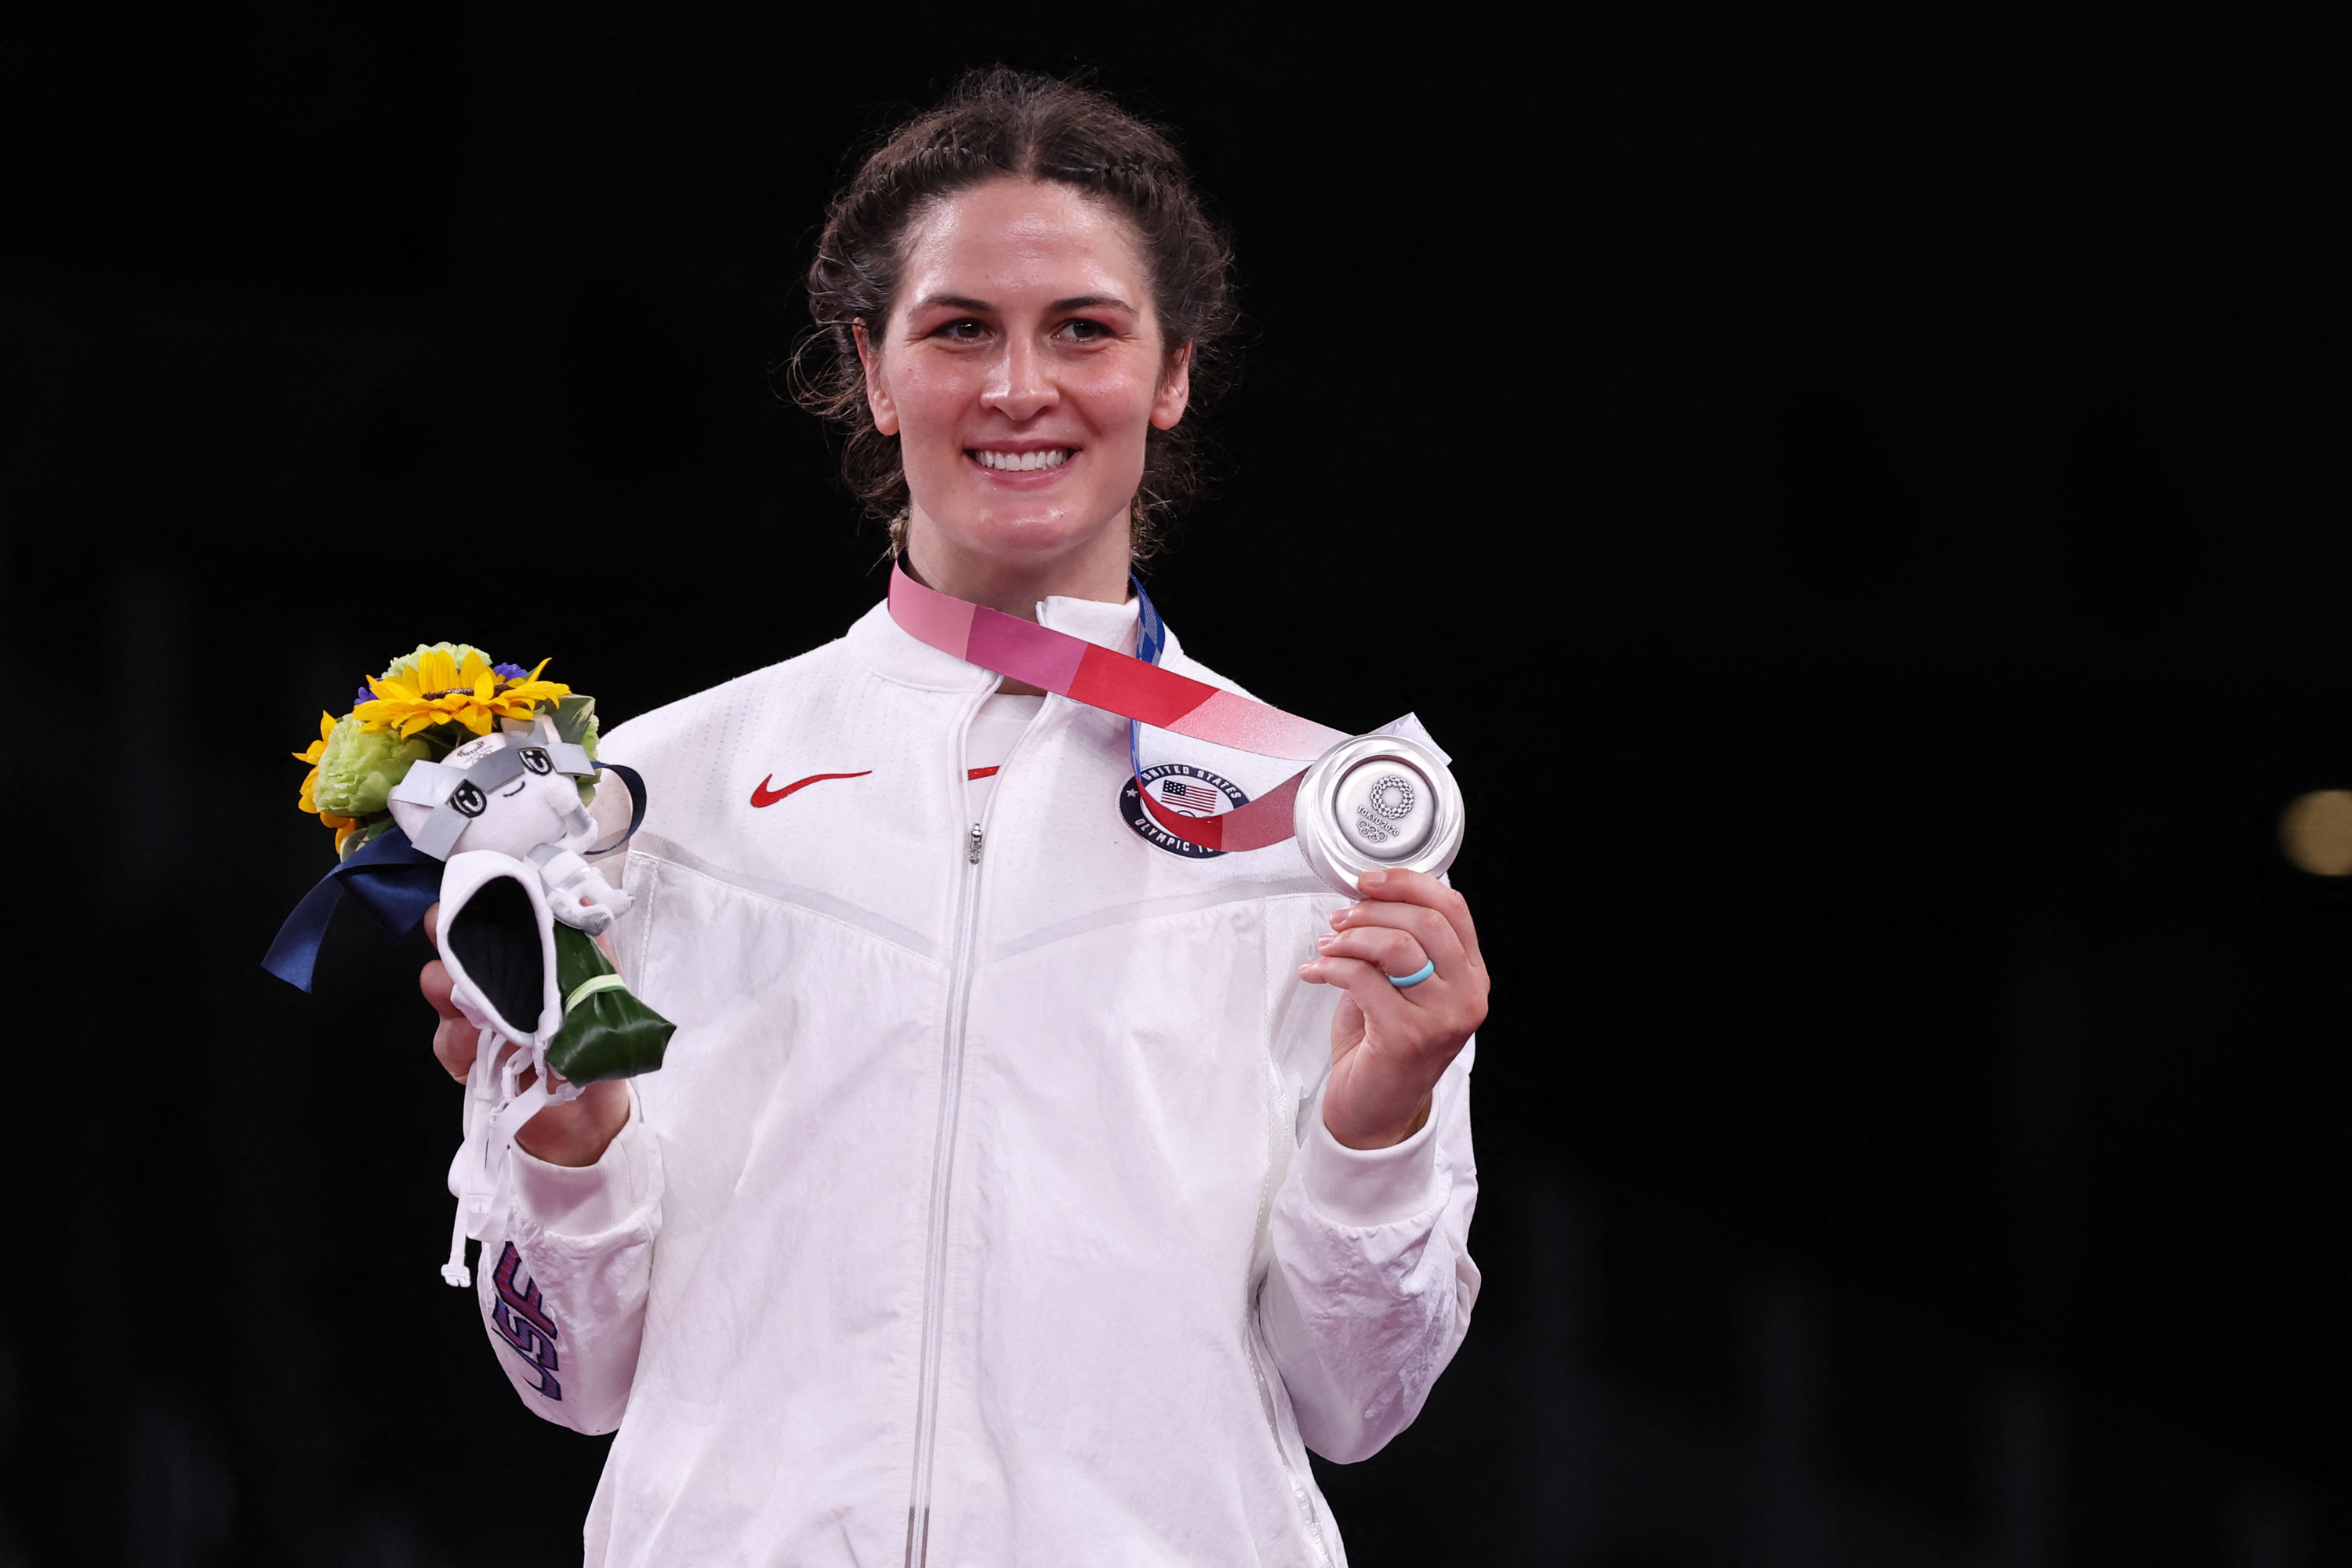 Gray posing on the podium with her silver medal and flowers